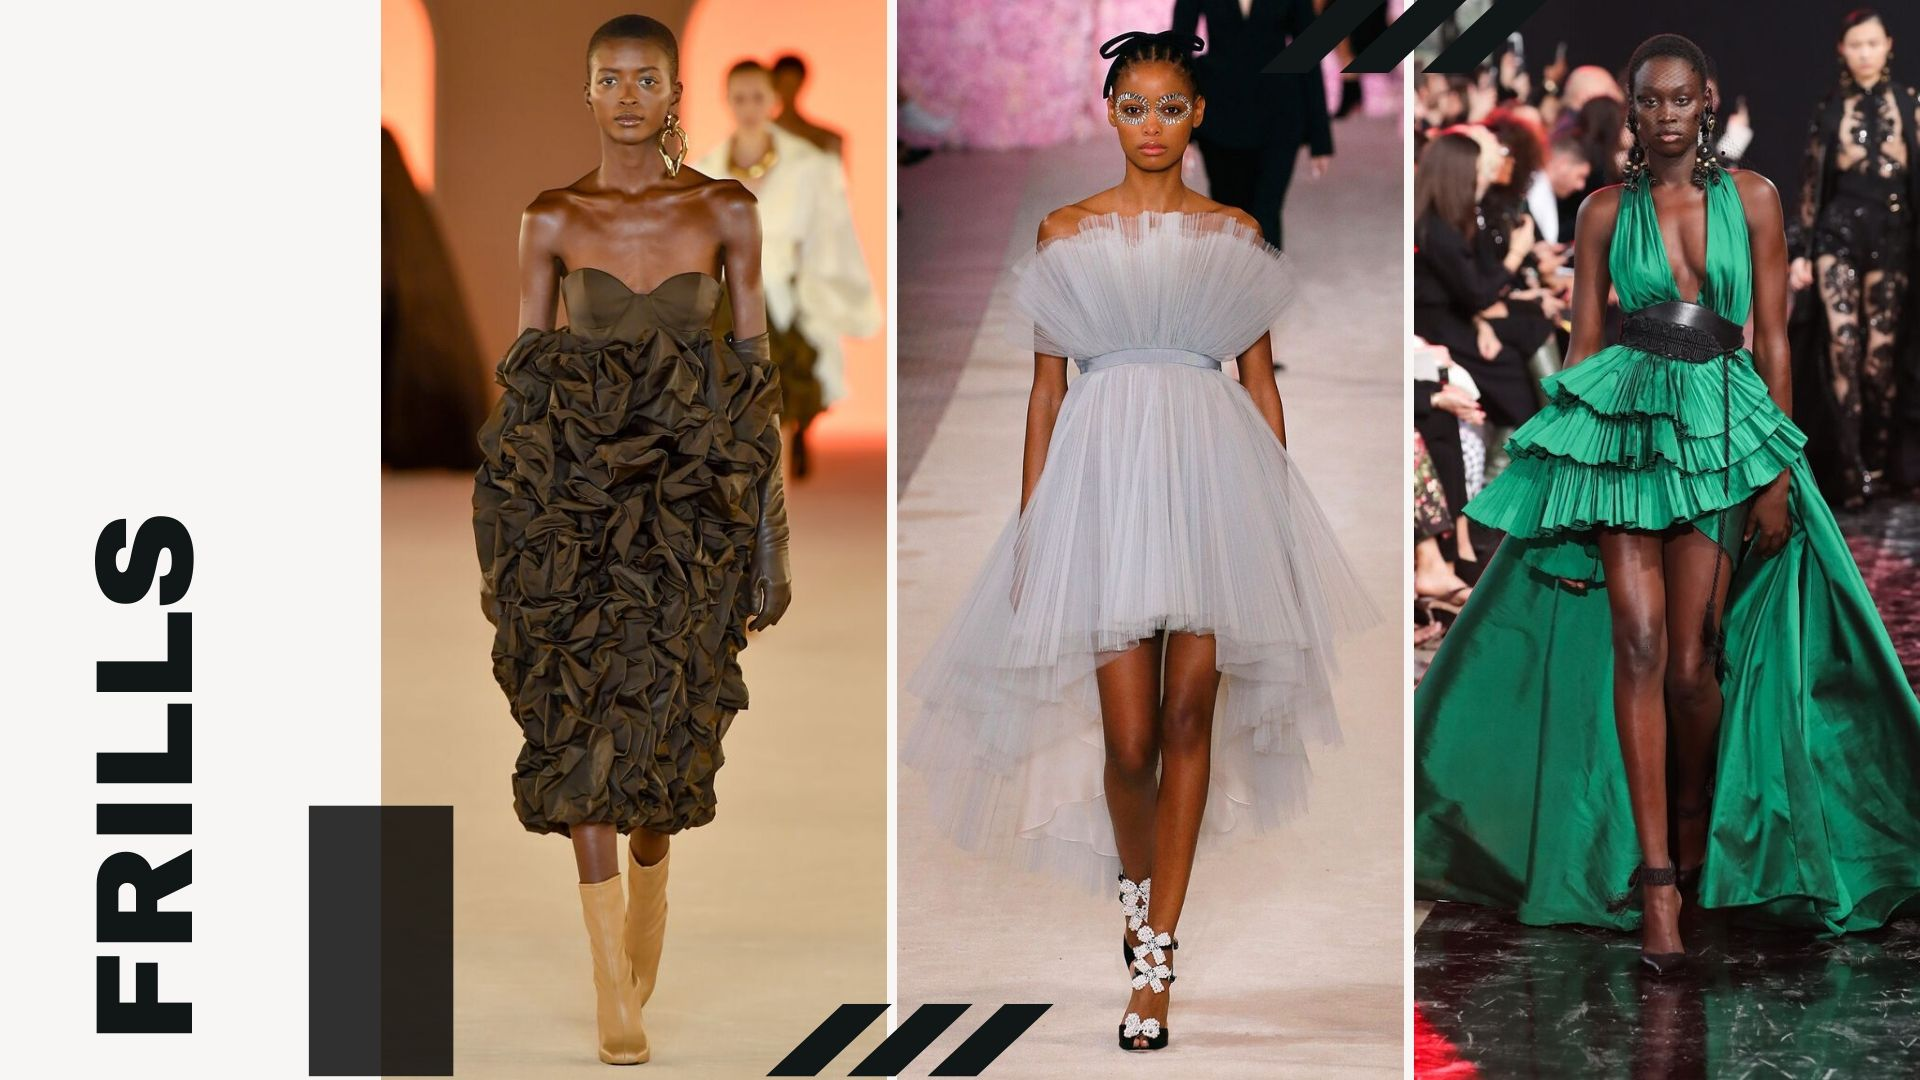 TOP 5 TRENDS FROM PFW F/W - Frills